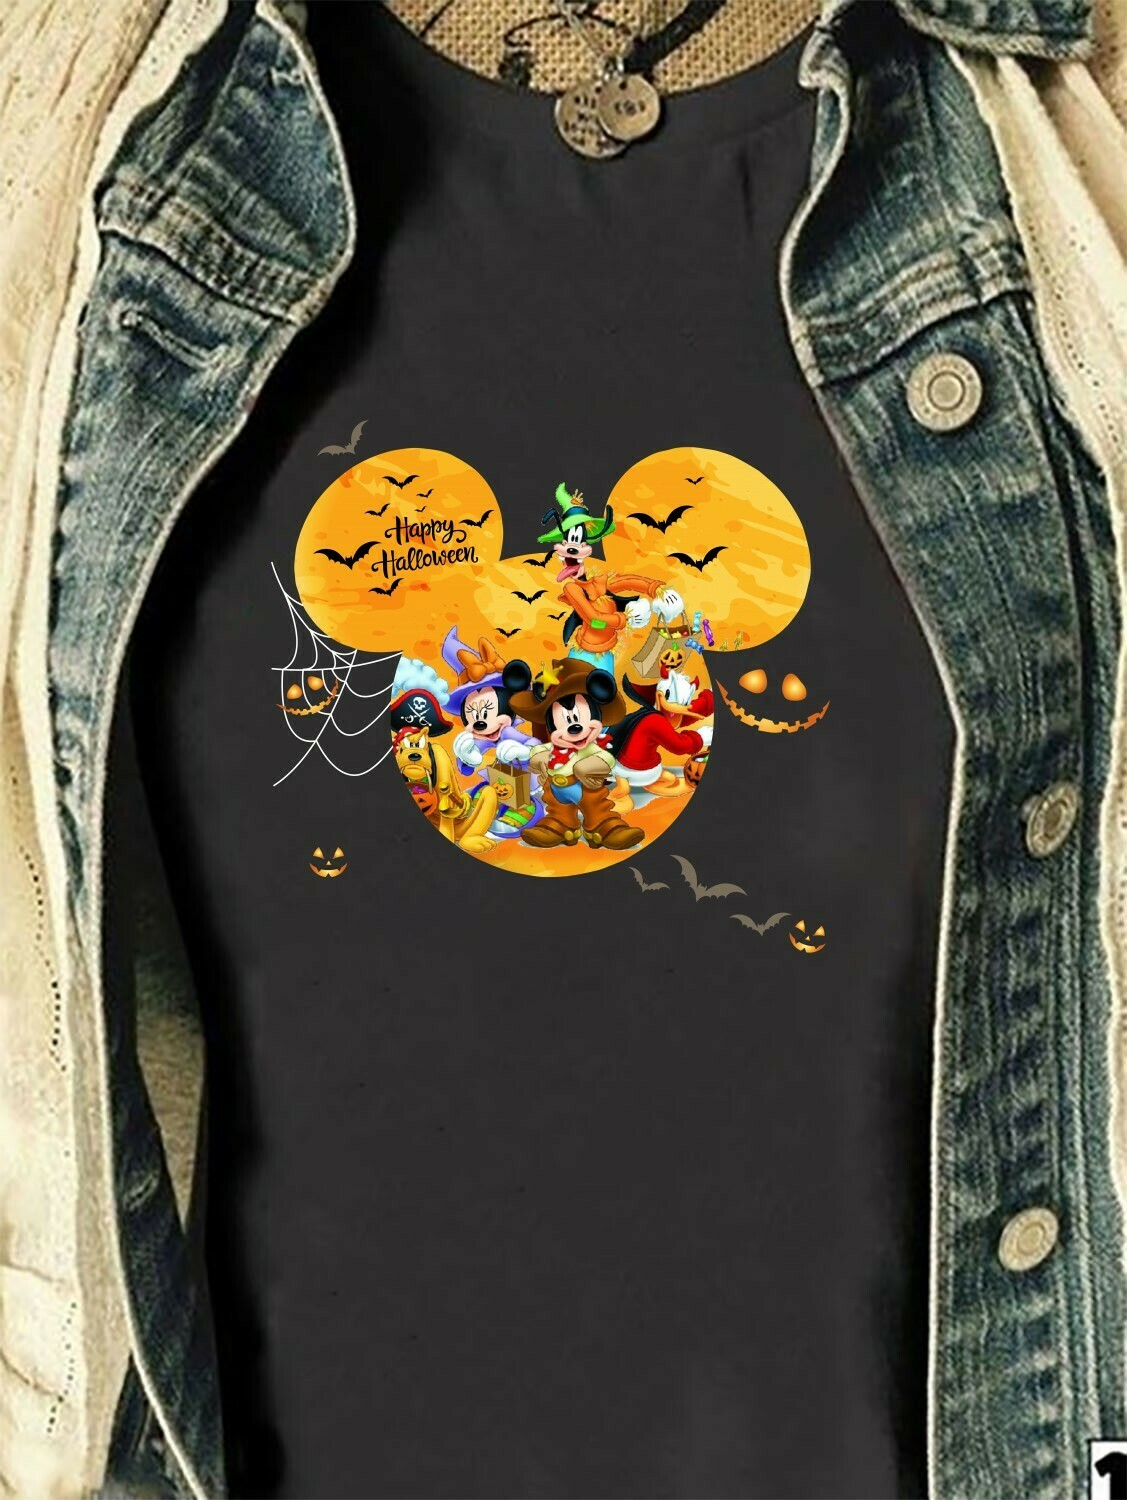 Disney Mickey Mouse Friends Happy Halloween Pumpkin Trick Or Treat I'm going to Walt Disney Vacation Family Let's Go to Disney World Shirt Long Sleeve Sweatshirt Hoodie Jolly Family Gifts